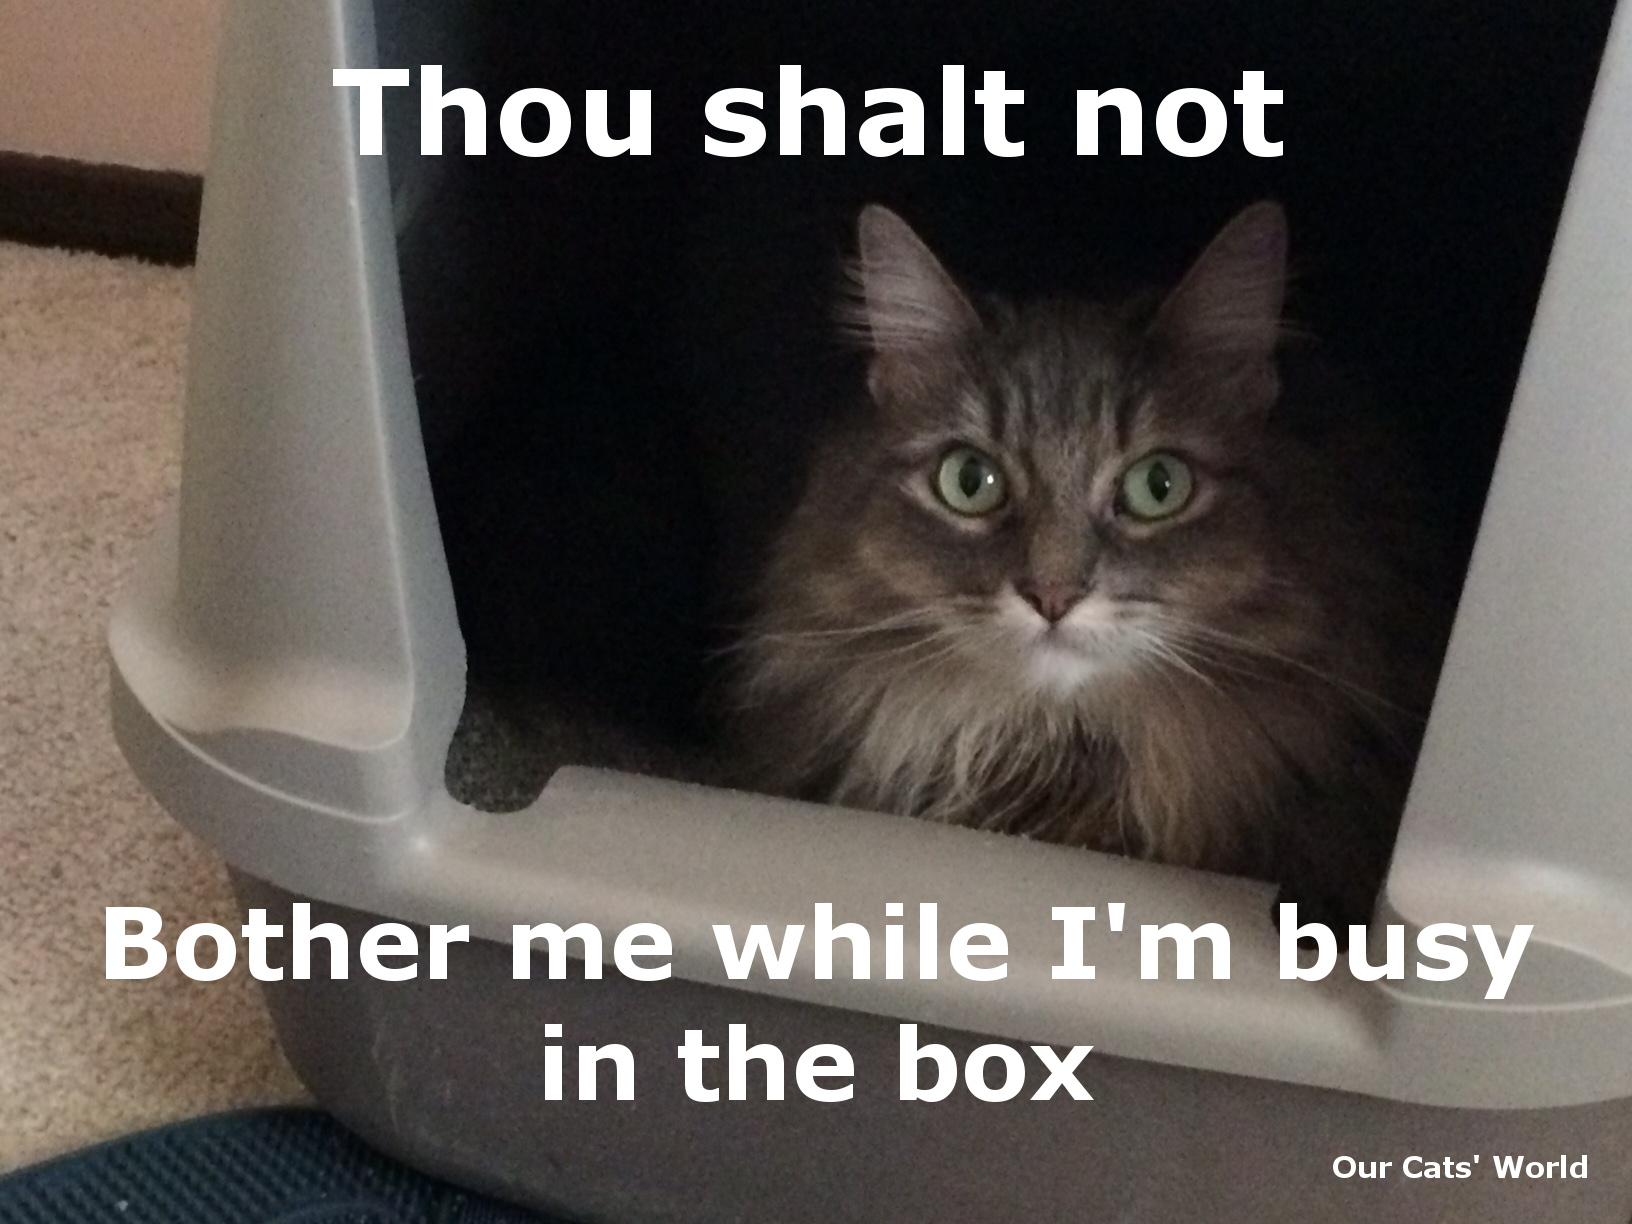 Kali_What_Litter_Box_Feline_Commandment